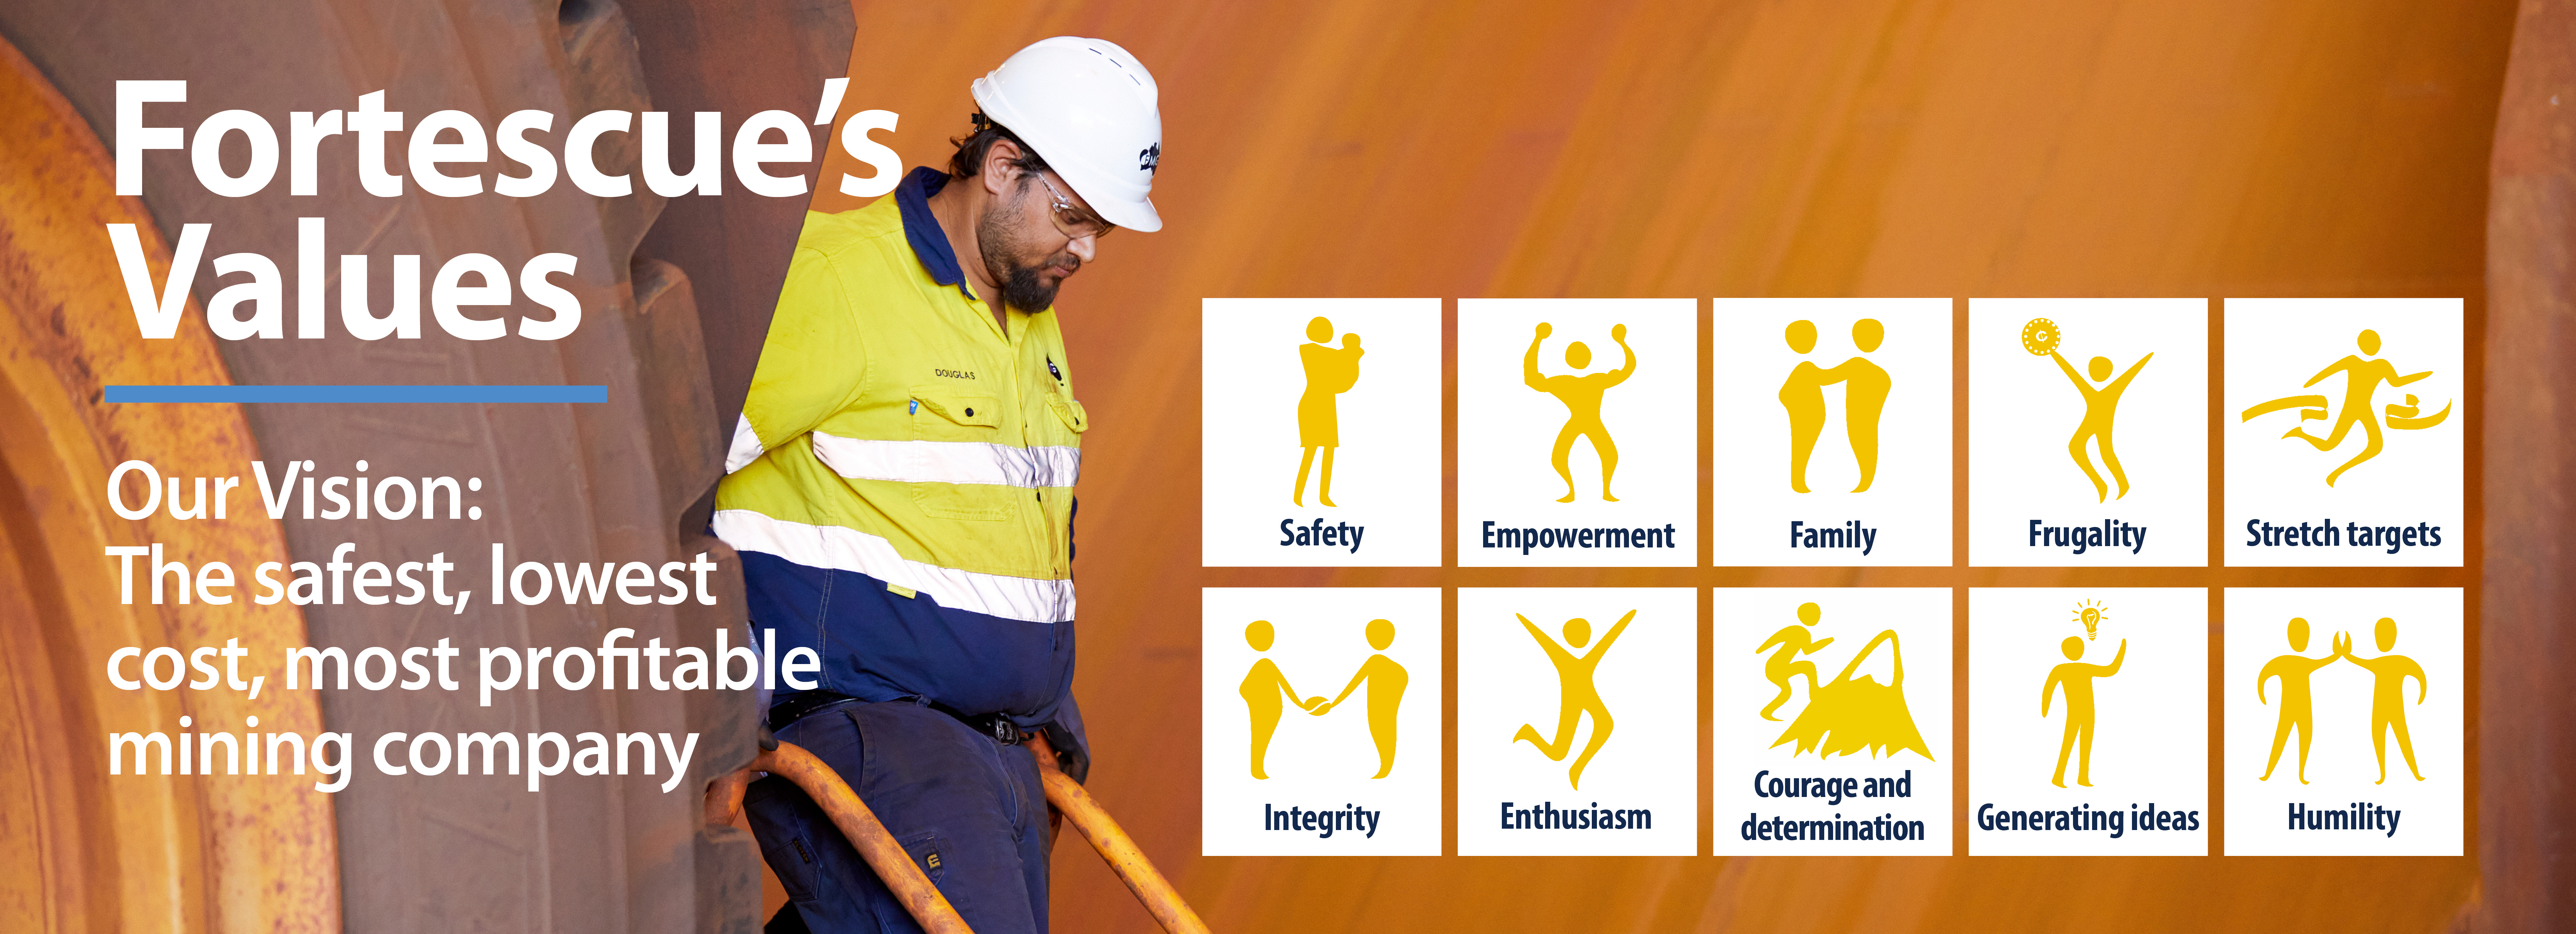 Fortescue Vision and Values